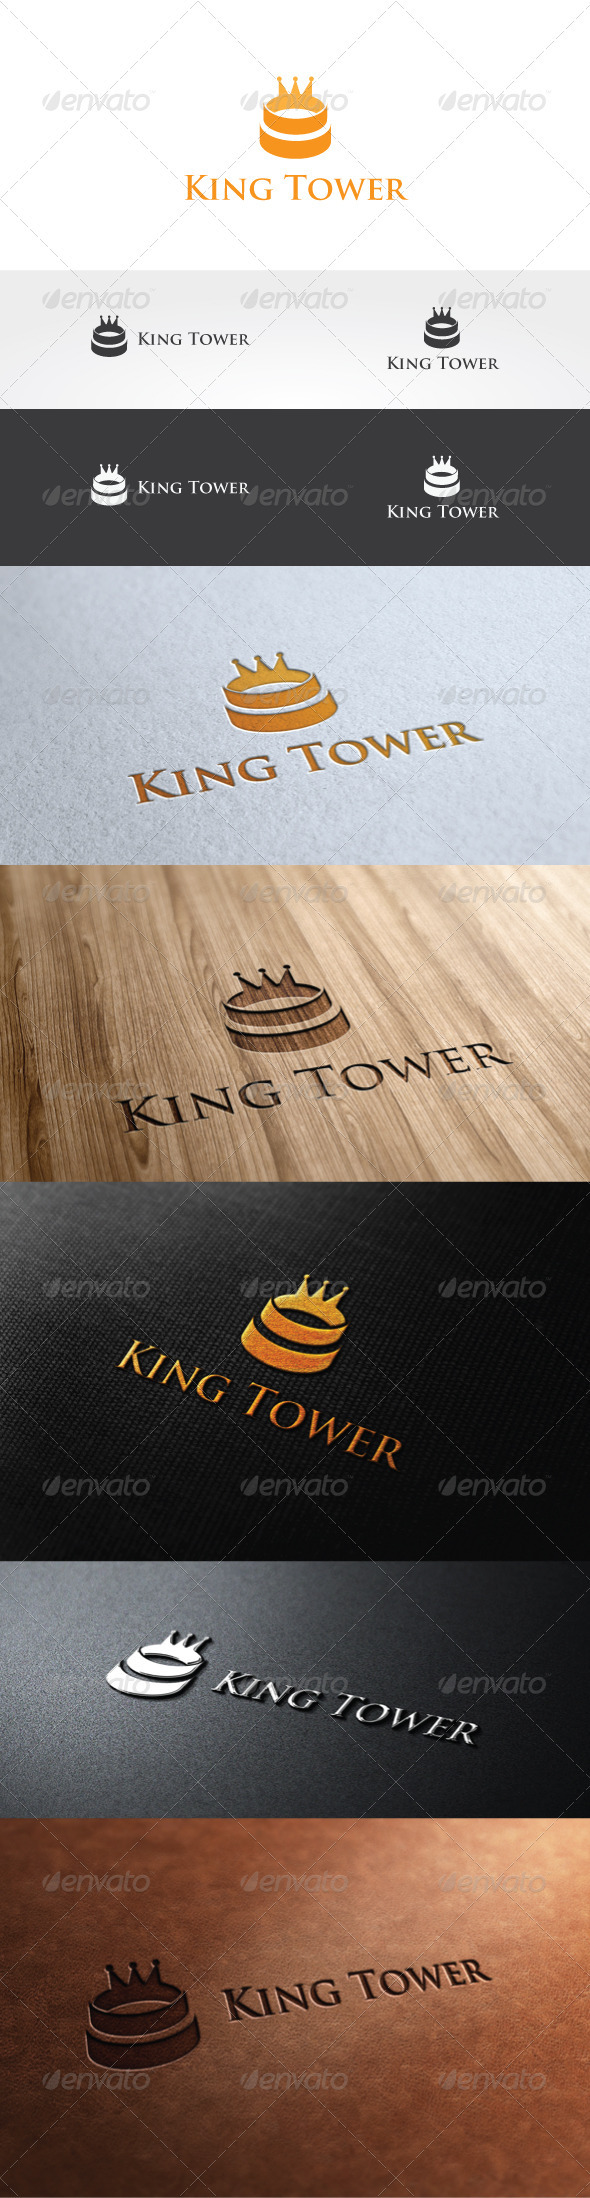 King Tower Logo Template - Objects Logo Templates